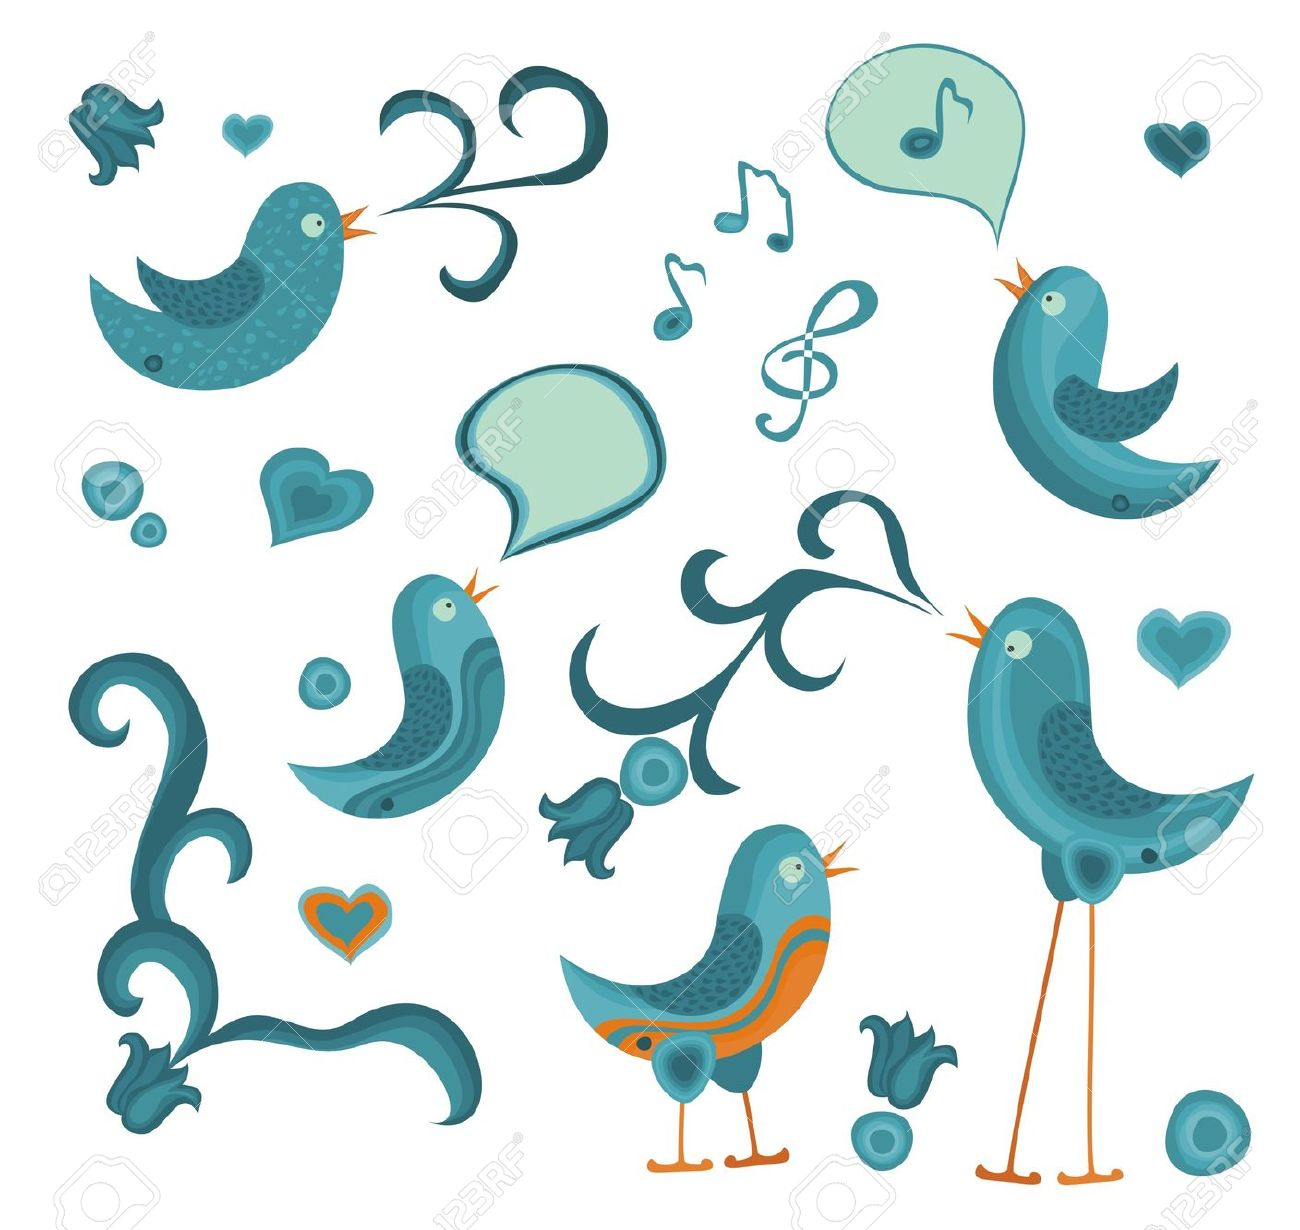 Cute Tweet Birds With Other Graphic Elements Royalty Free Cliparts.